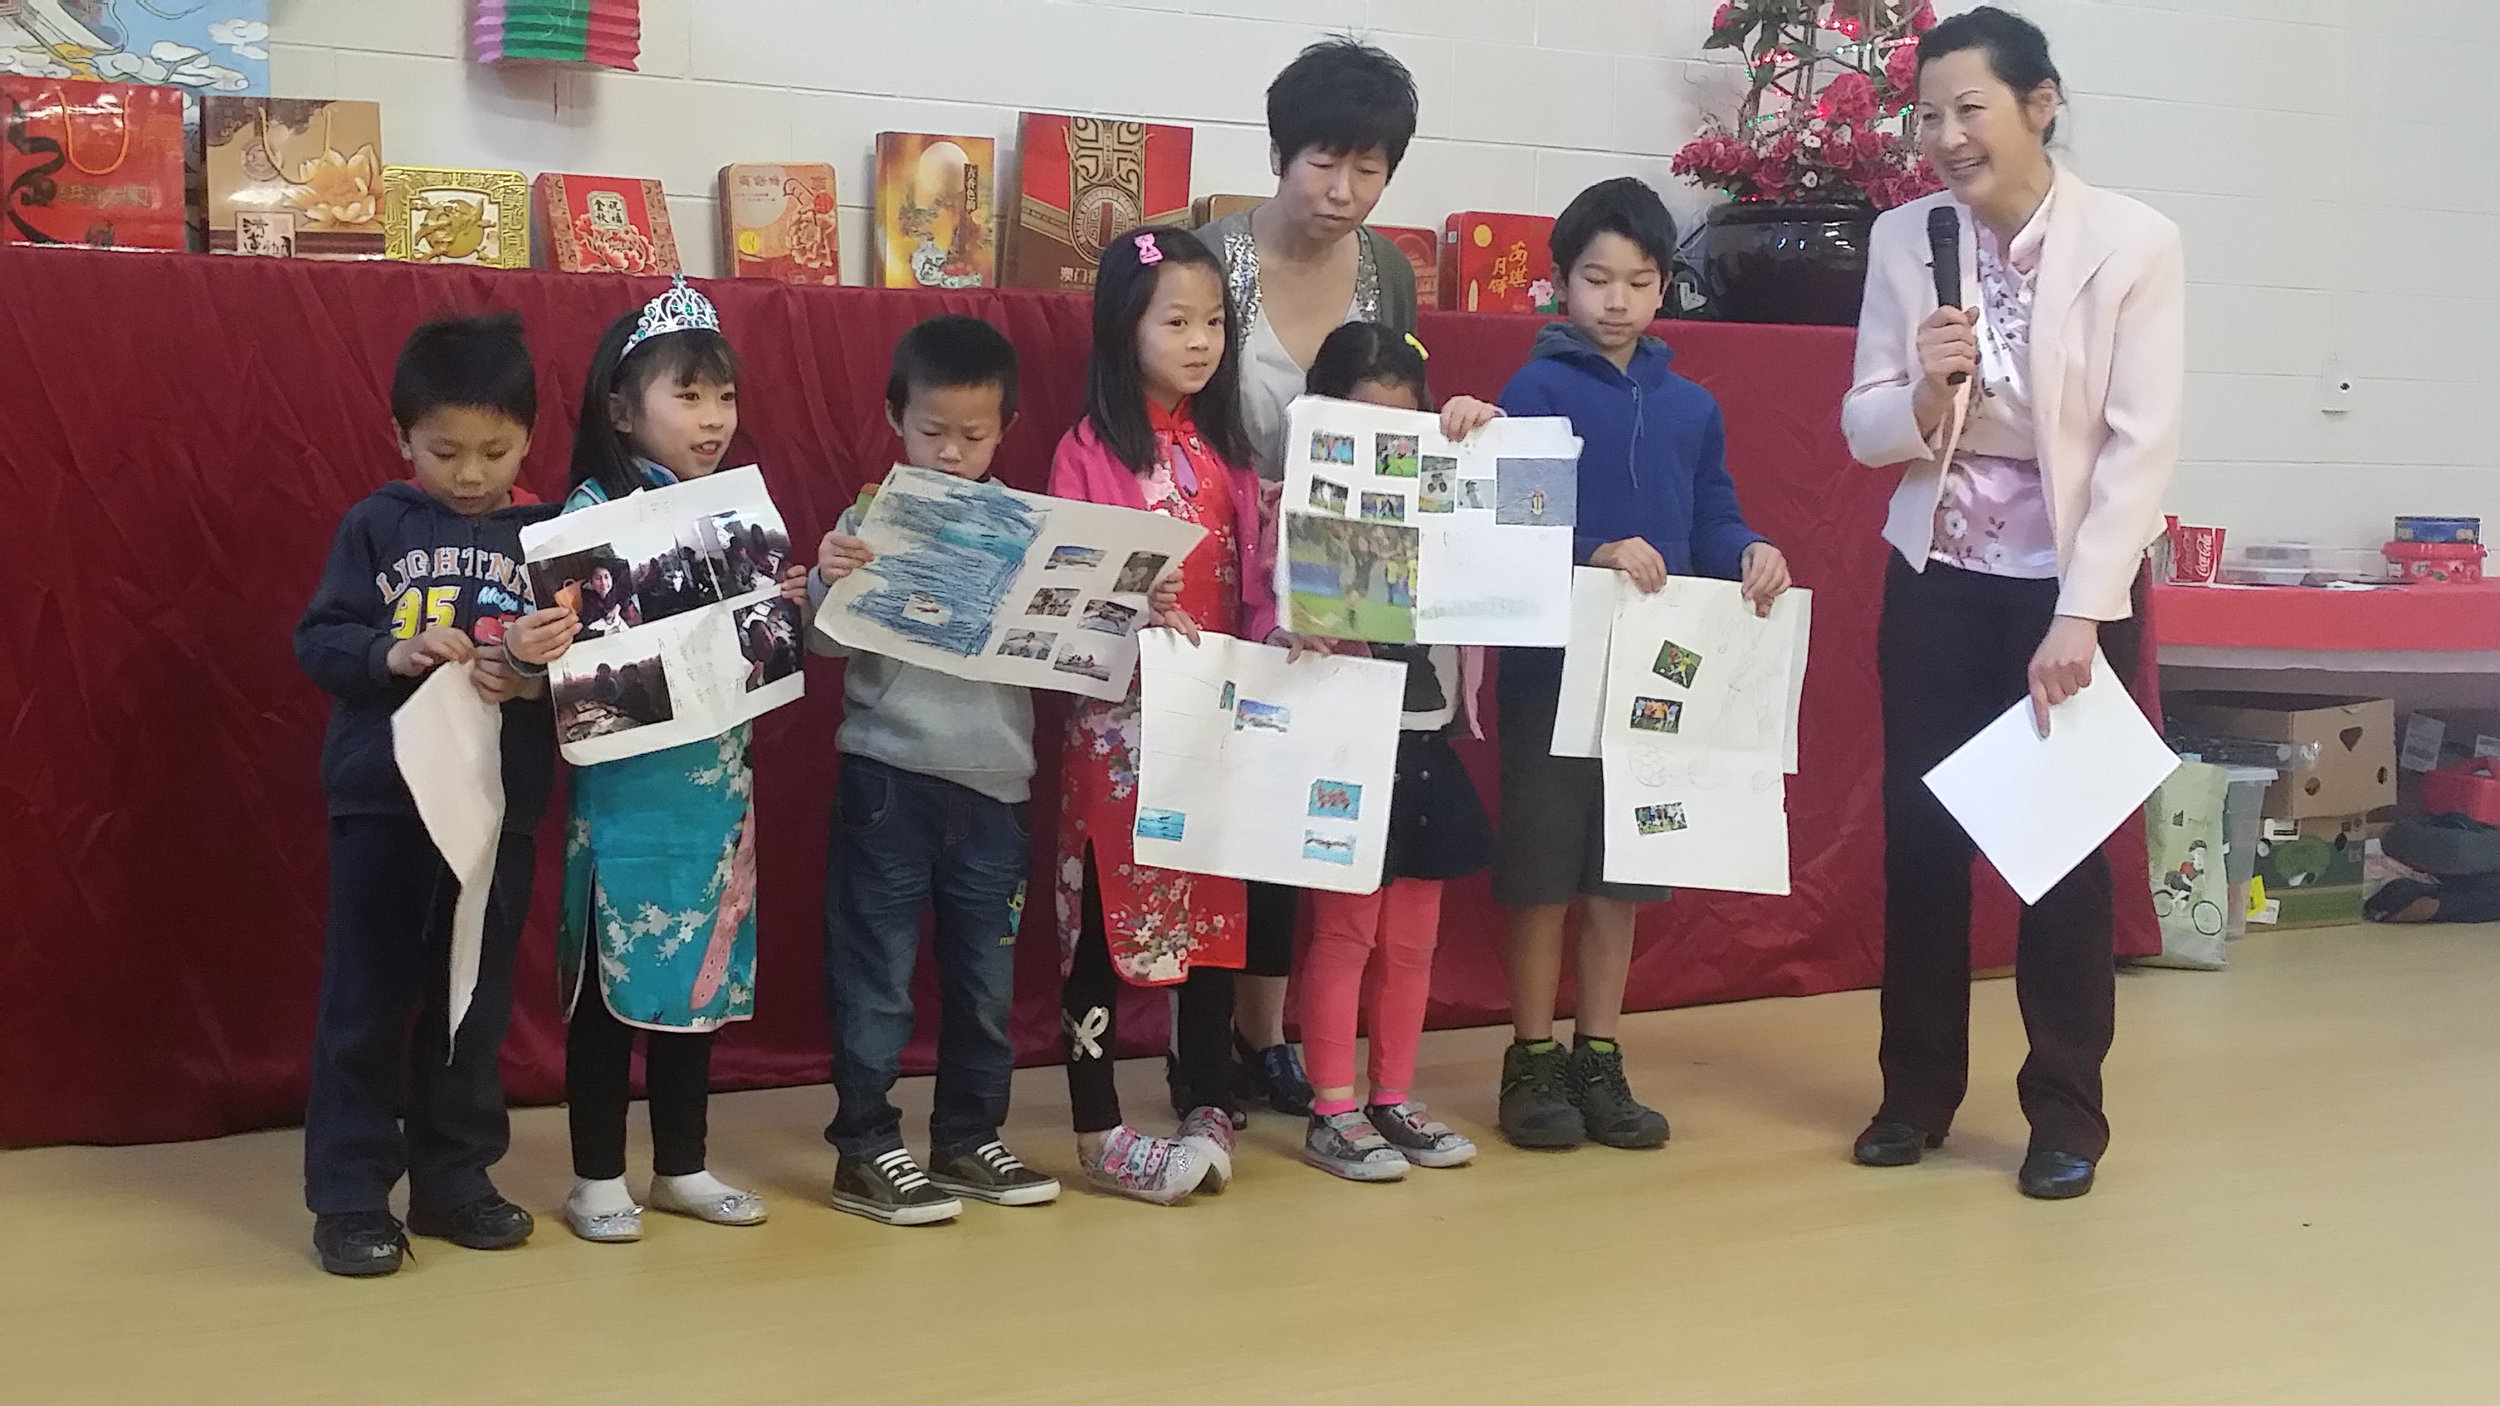 The New Zealand Chinese Association (Canterbury branch) also celebrated the mid-autumn (moon cake) festival and a family day on September 11